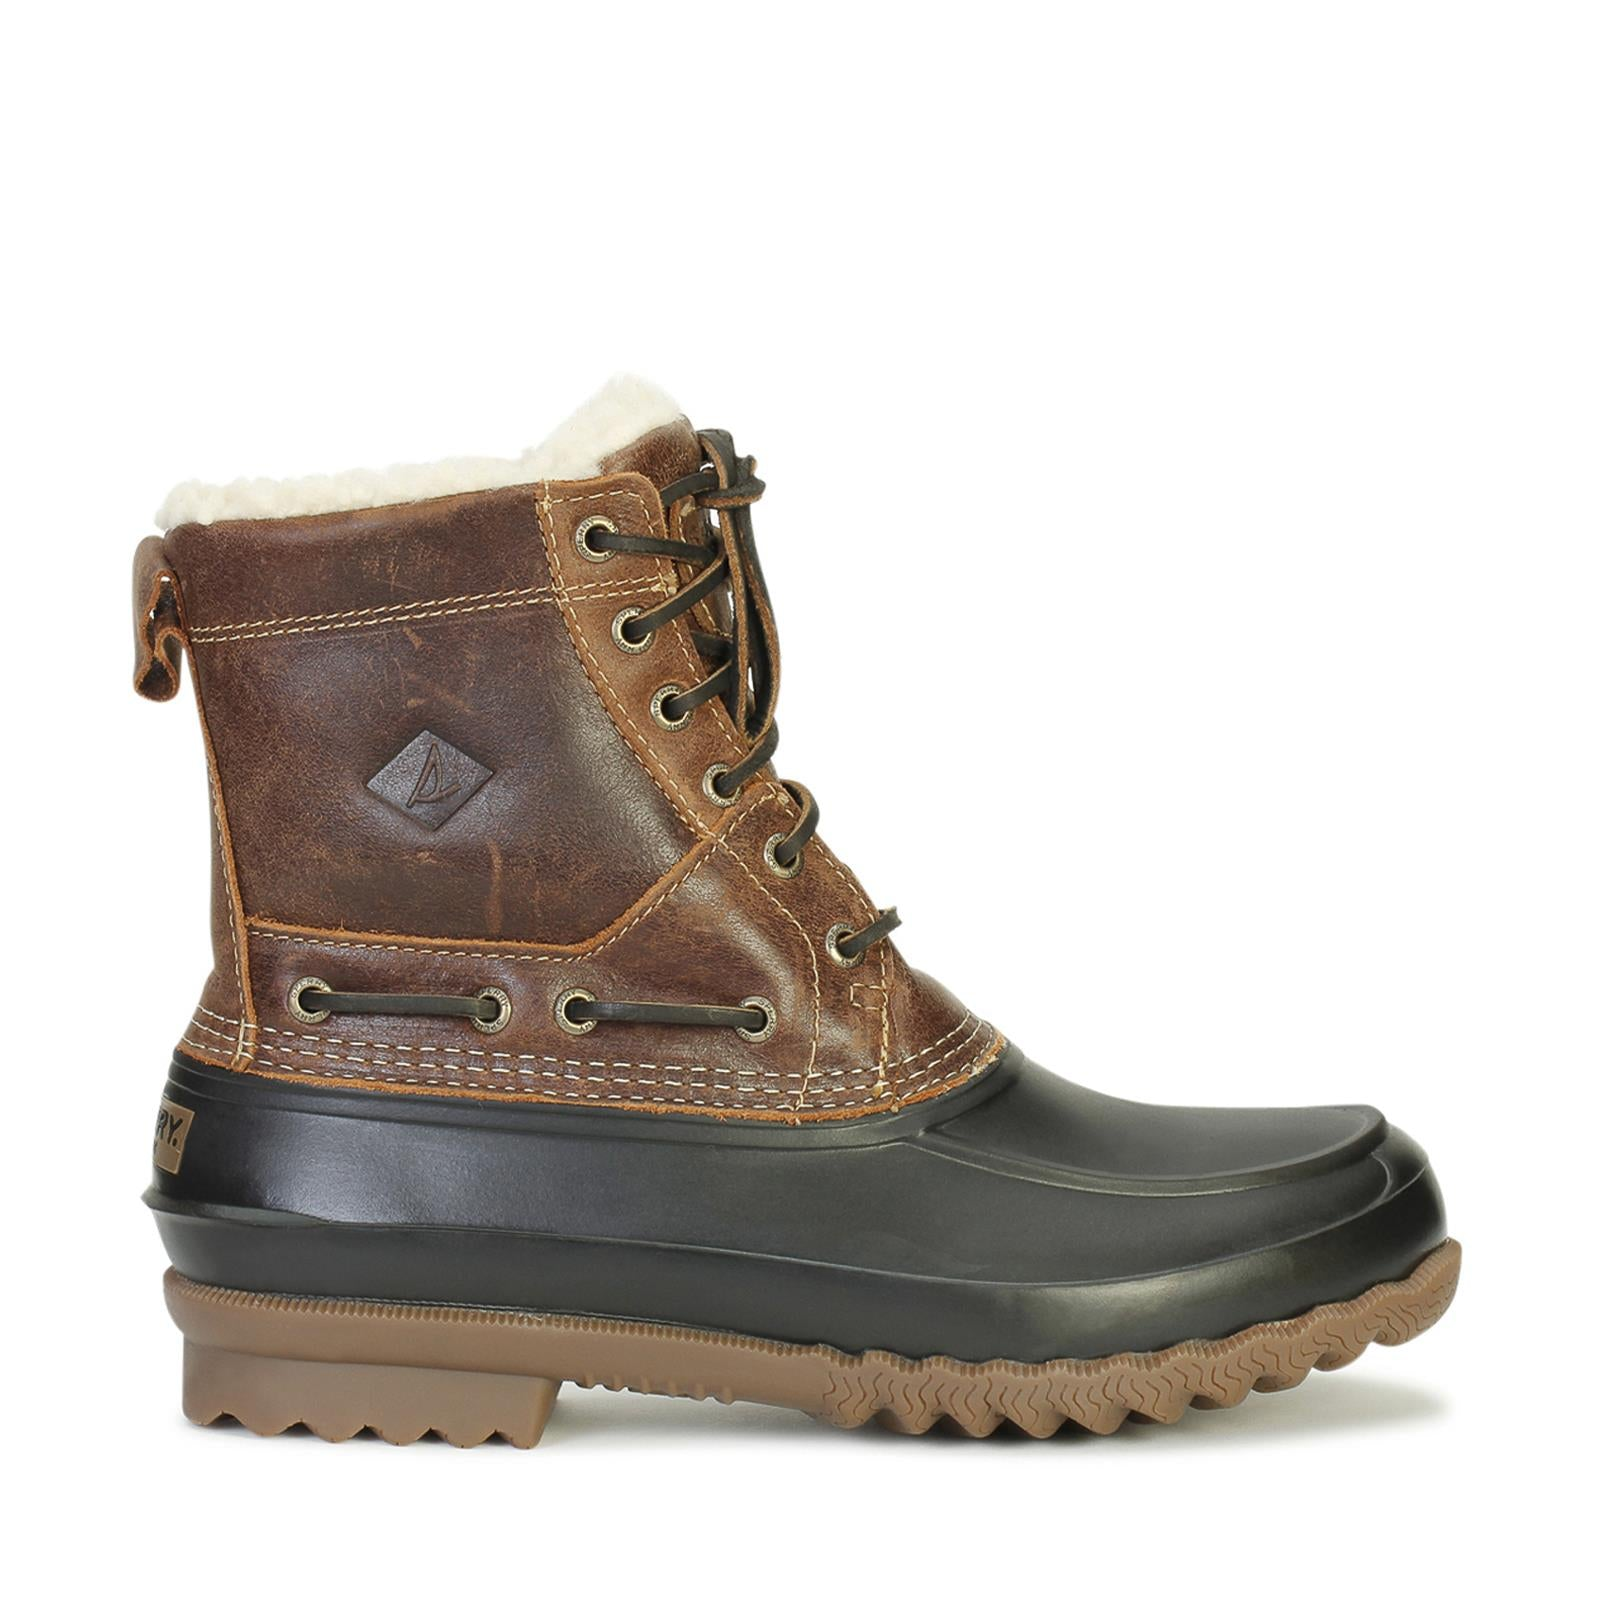 sperry-top-sider-mens-decoy-shearling-boot-waterproof-brown-sts14469-main